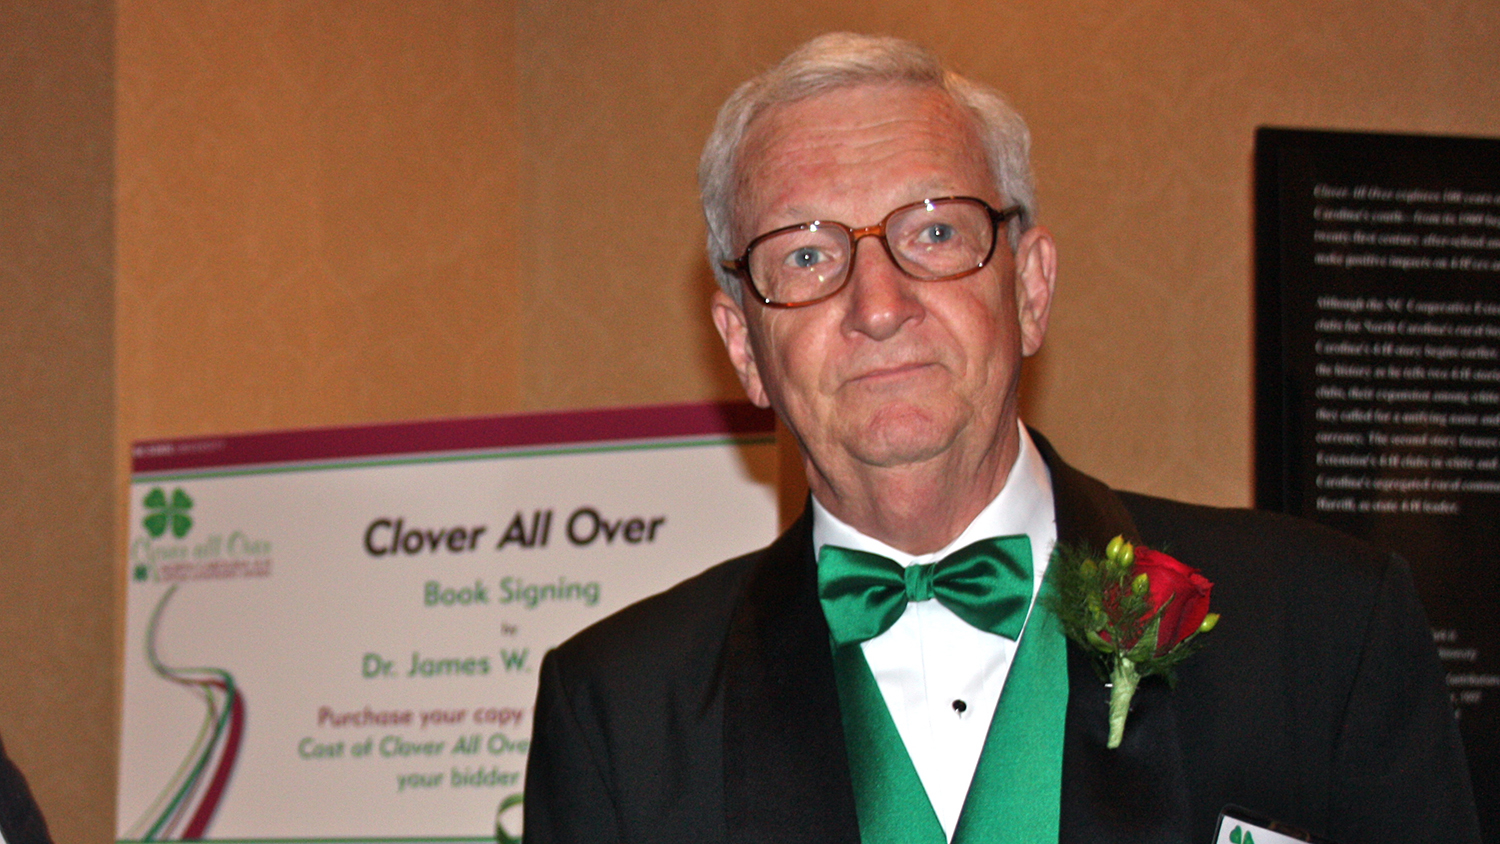 4-H Alumnus Jim Clark has written two histories of North Carolina 4-H, giving back to an organization that deeply influenced his life.